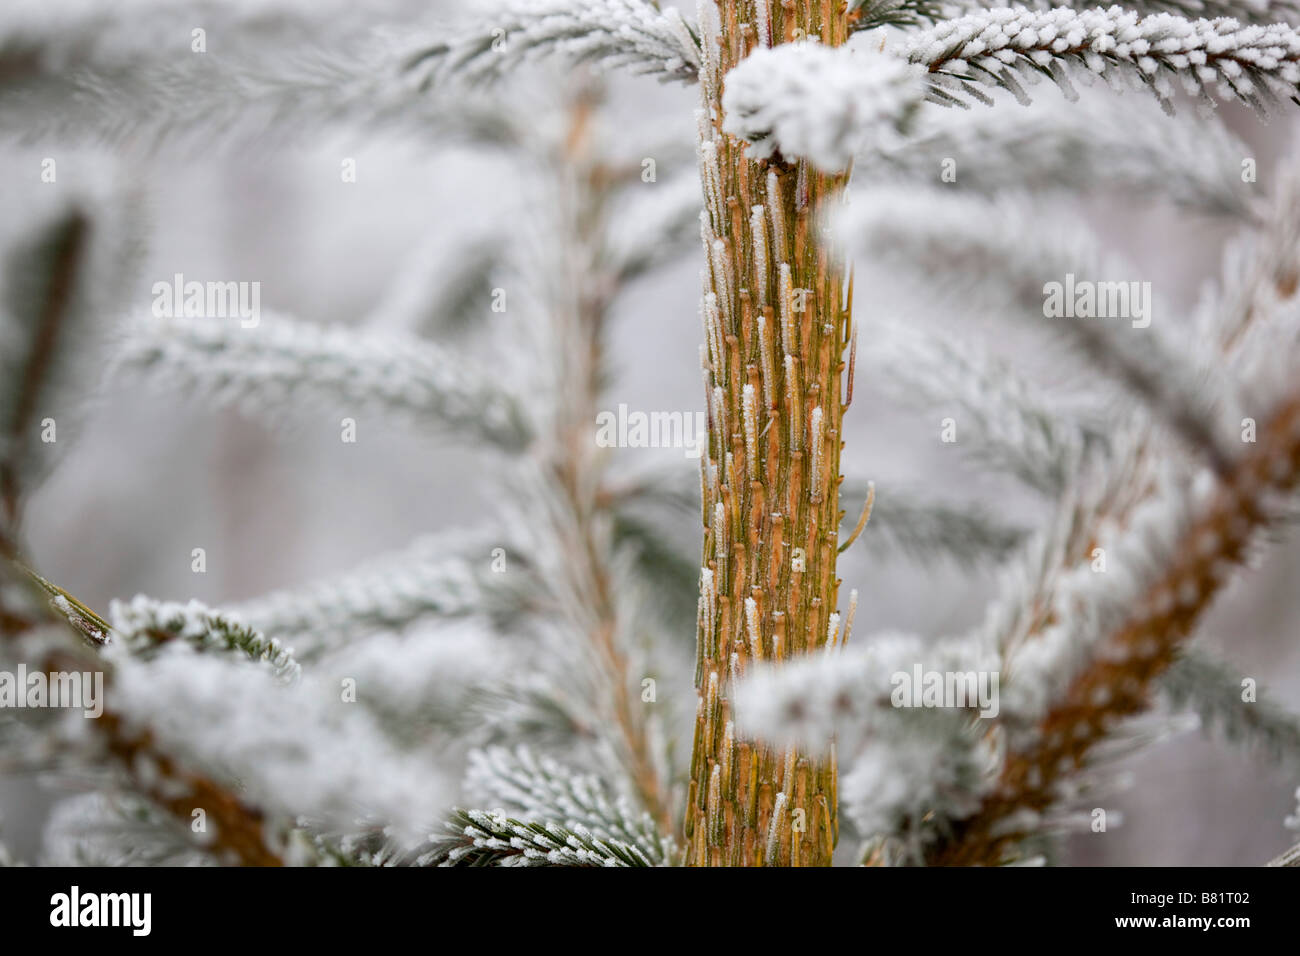 frost crystals on pine needles christmas tree - Stock Image